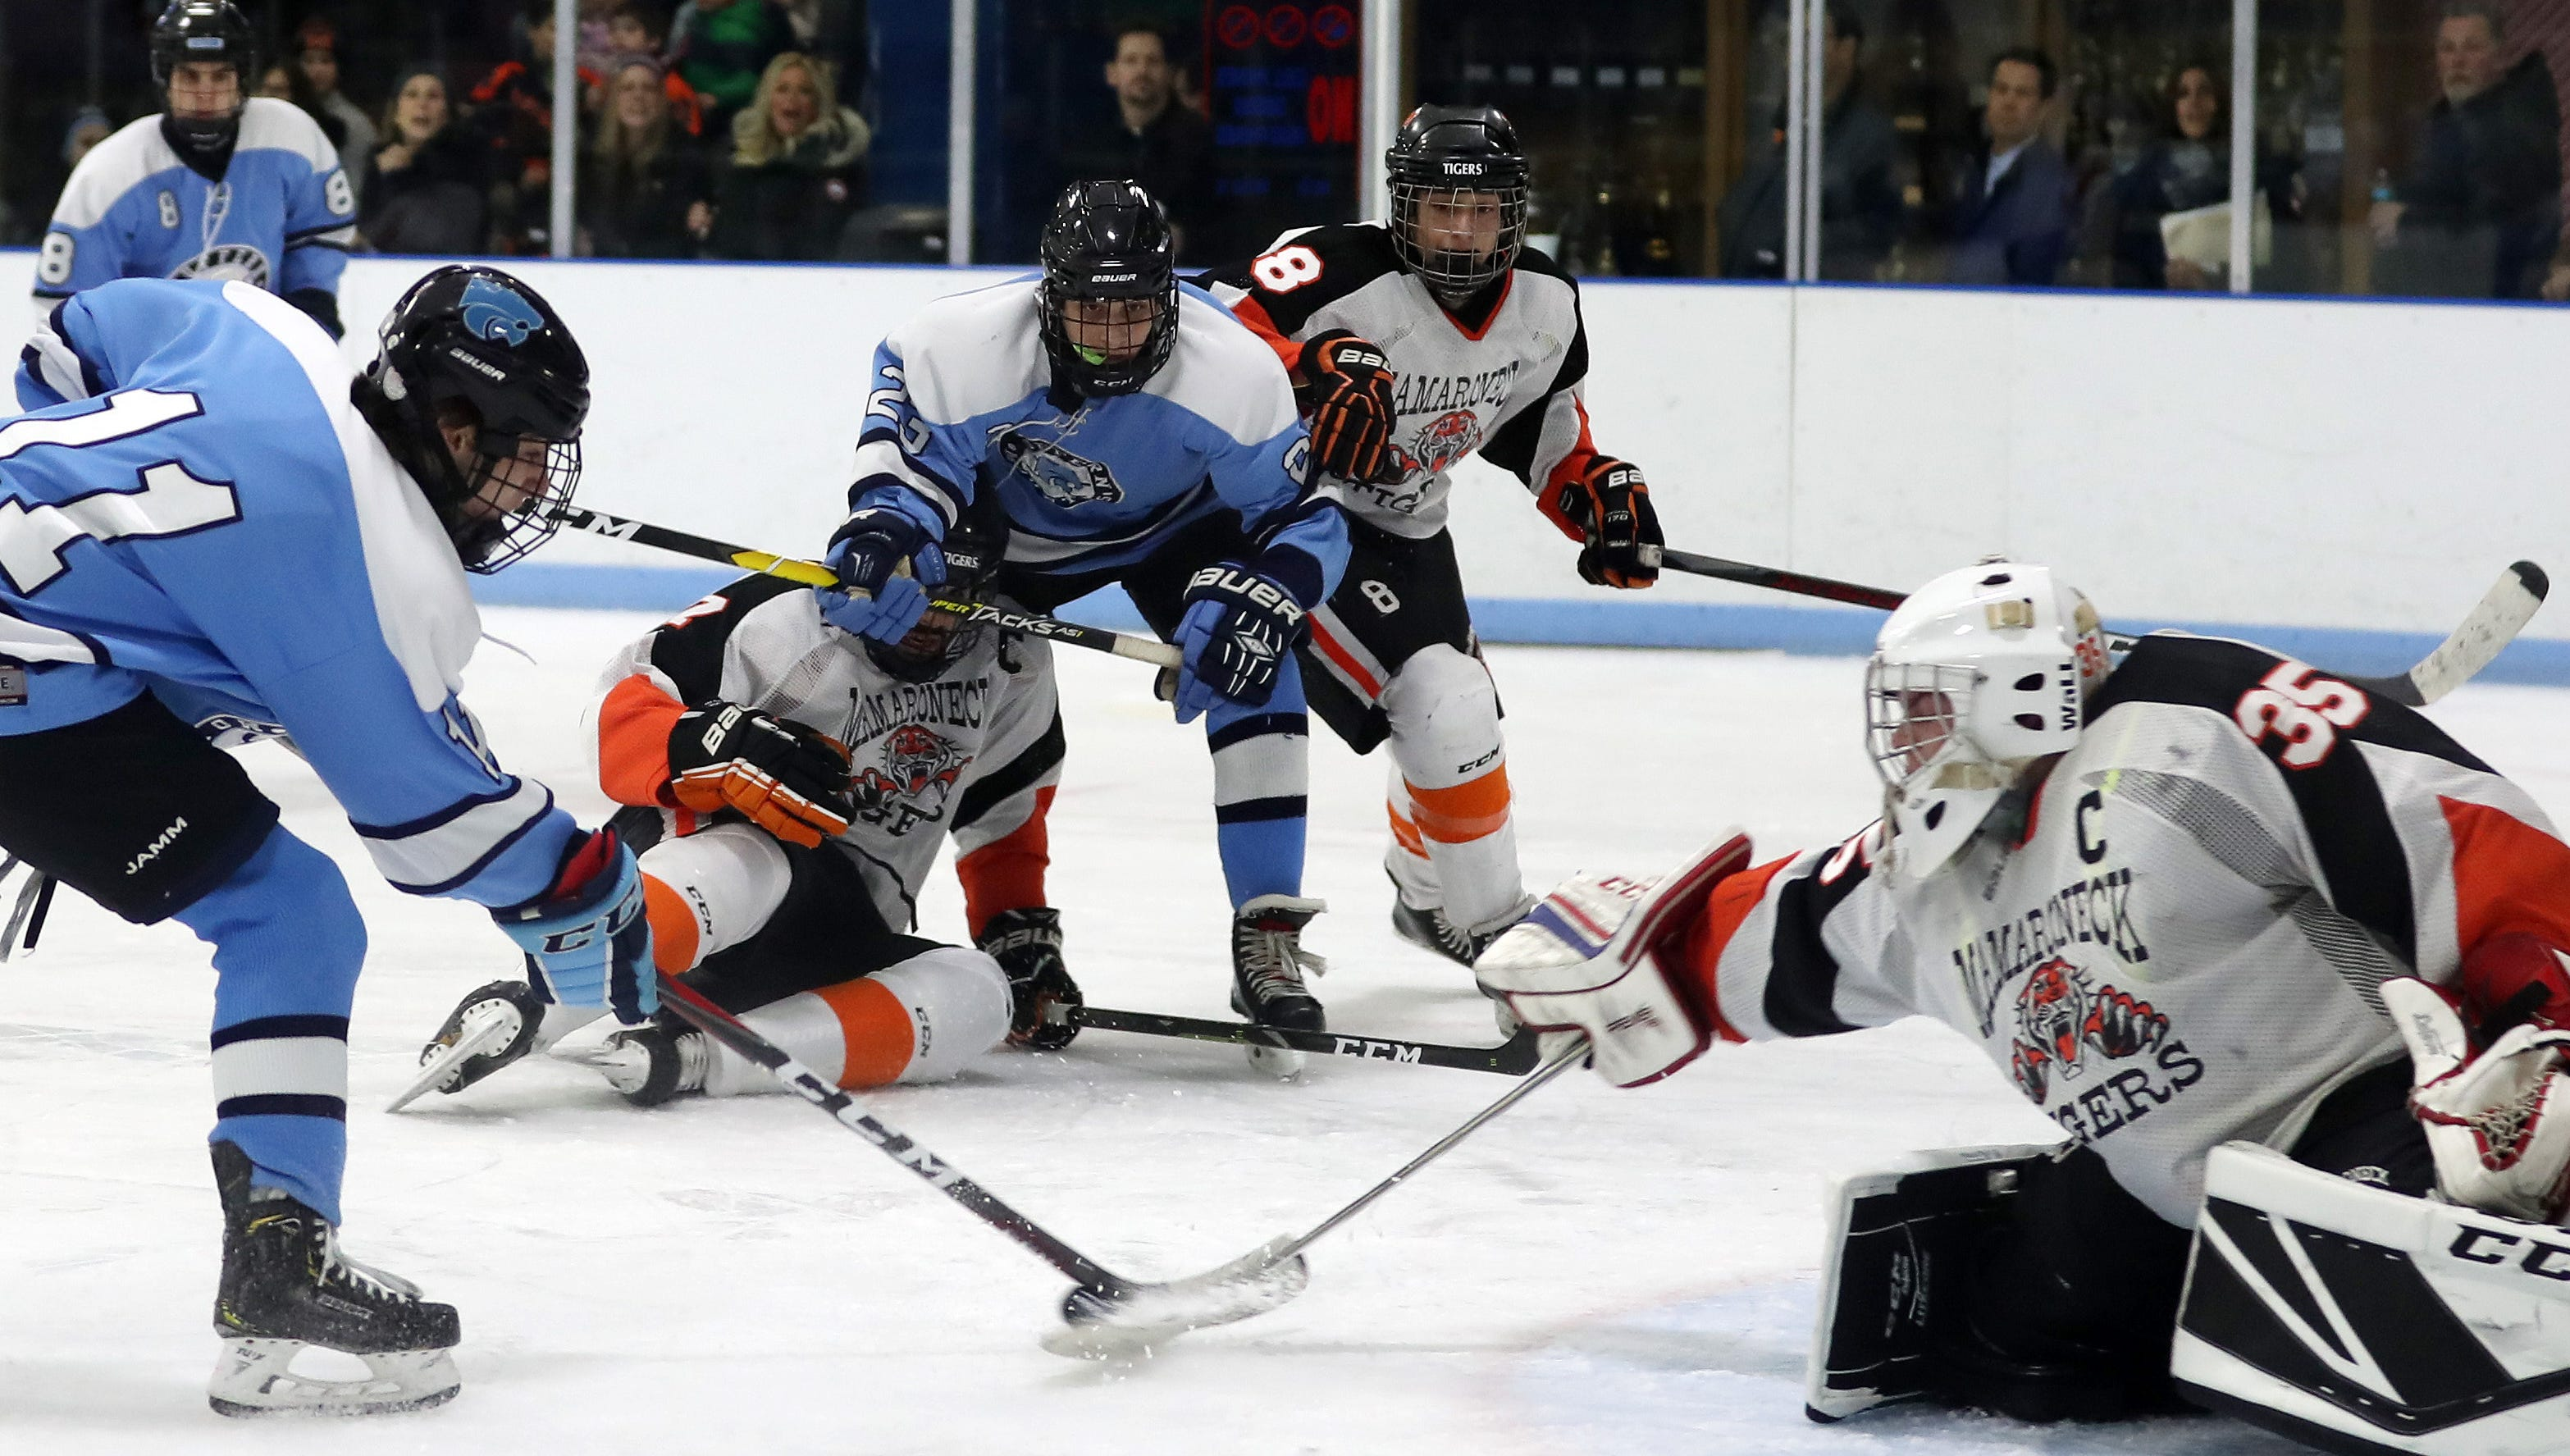 Mamaroneck goalie Jack Fried (35) stops a shot by Suffern's Tom McCarren (11)  during hockey action at Hommocks Park Ice Rink in Mamaroneck Jan. 11, 2019. The two teams played to a 2-2 tie.